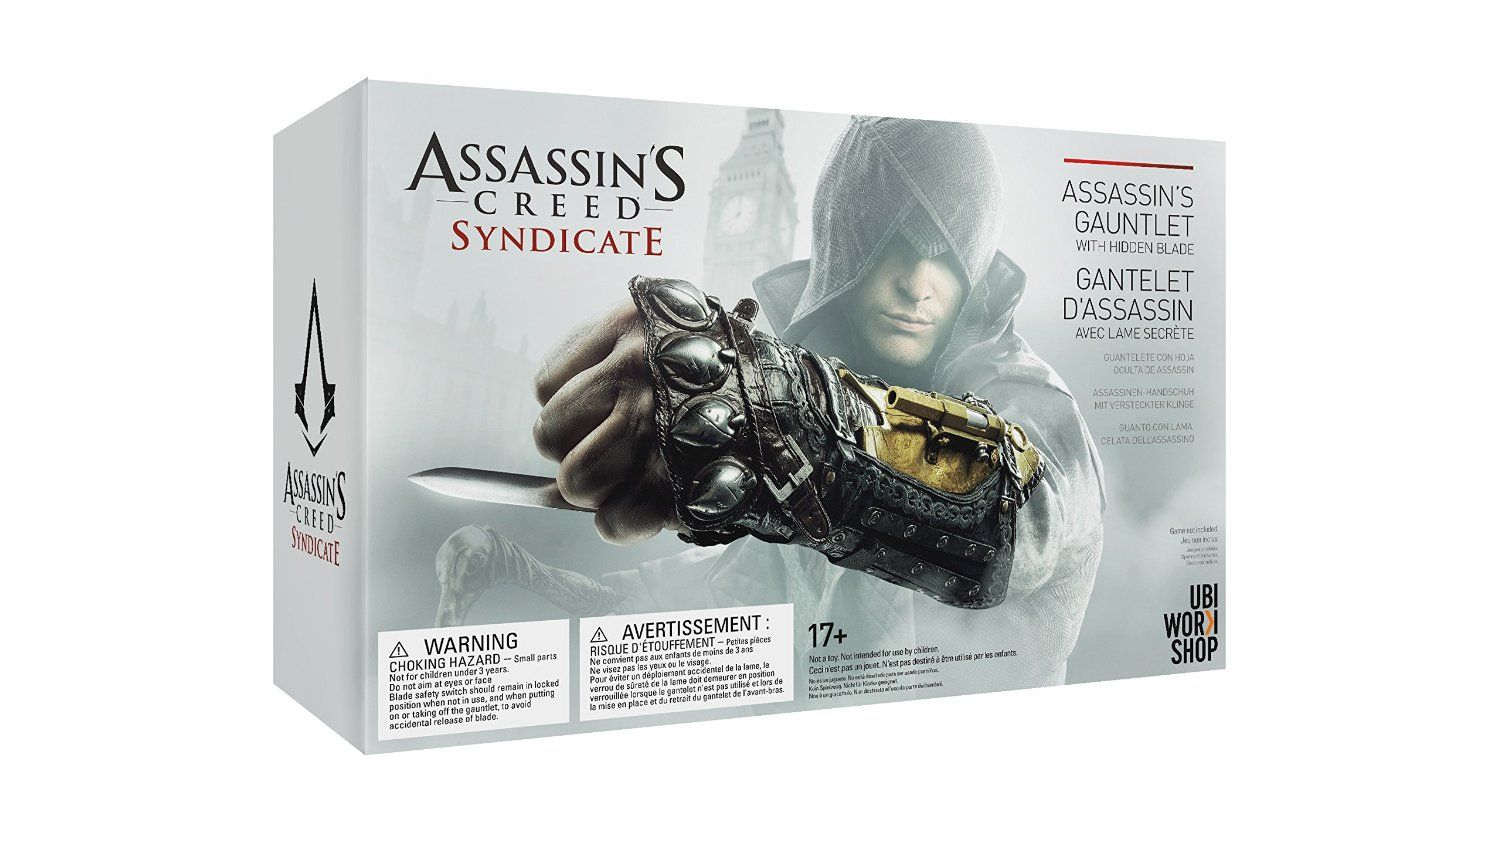 Amazon Com Assassin S Creed Syndicate Assasin S Gauntlet With Hidden Blade Toys Games Assassins Creed Syndicate Assassin S Creed Gauntlet Assassin